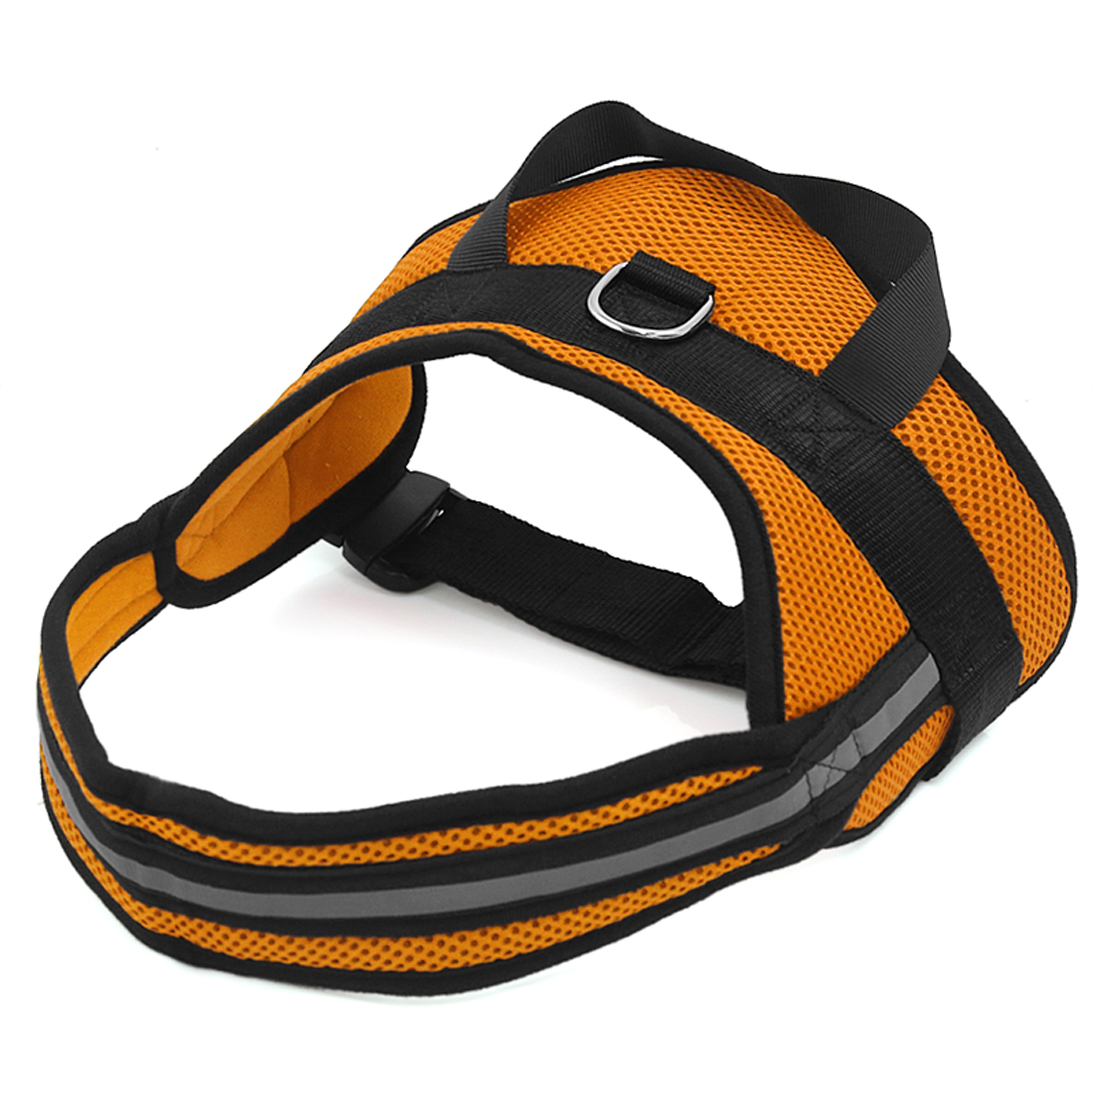 Big Dog Soft Mesh Reflective No Pull Harness Adjustable Large Pet Walk Vest Safe Control Collar Orange XS